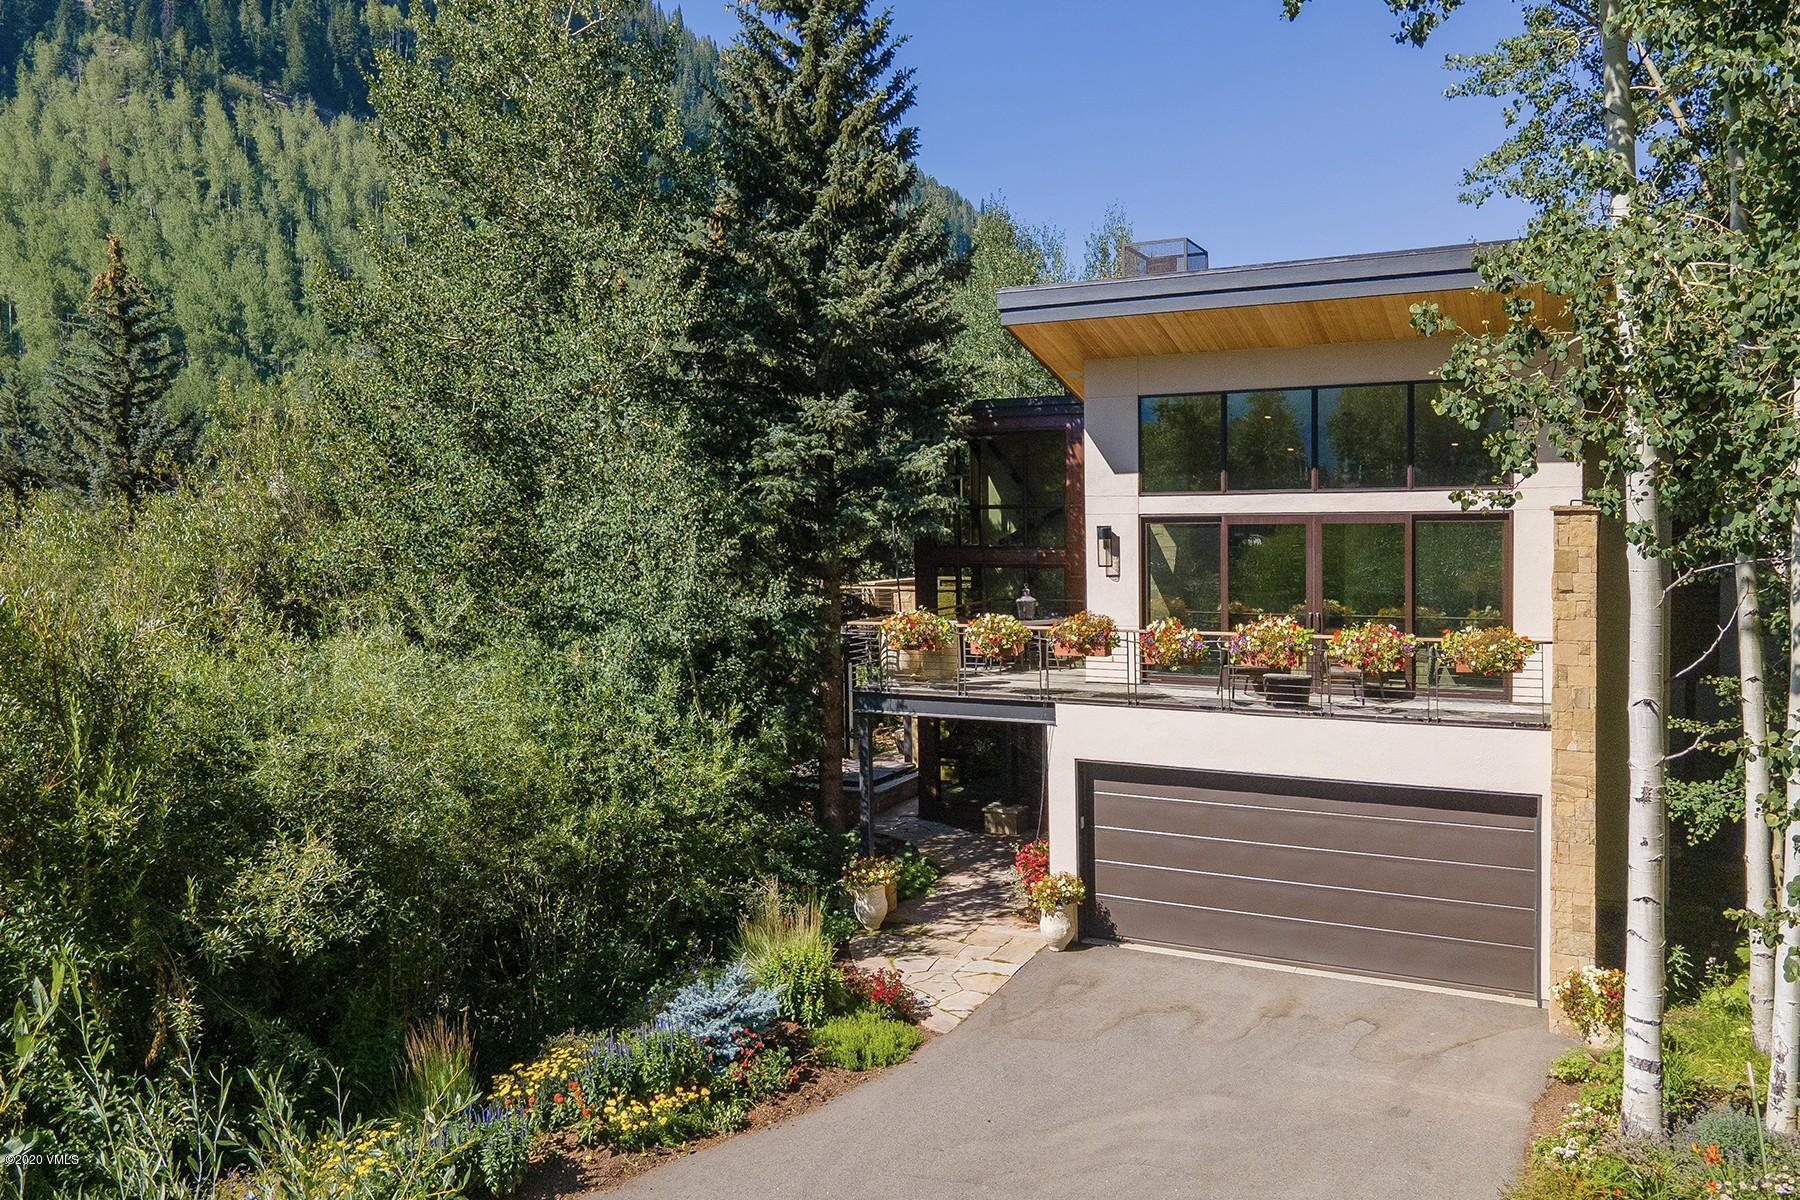 Mountain modern 5-bedroom home features soaring windows and picturesque views of the surrounding mountains, Designator ice wall/waterfall and aspens. Feels like a single-family home with the private driveway. All bedrooms boast ensuite bathrooms. Multiple decks to take in the beautiful surroundings. The architect was Kyle Webb and Nedbo Construction was the builder. For more photos and details visit: 2995BoothCreek.com/?mls.